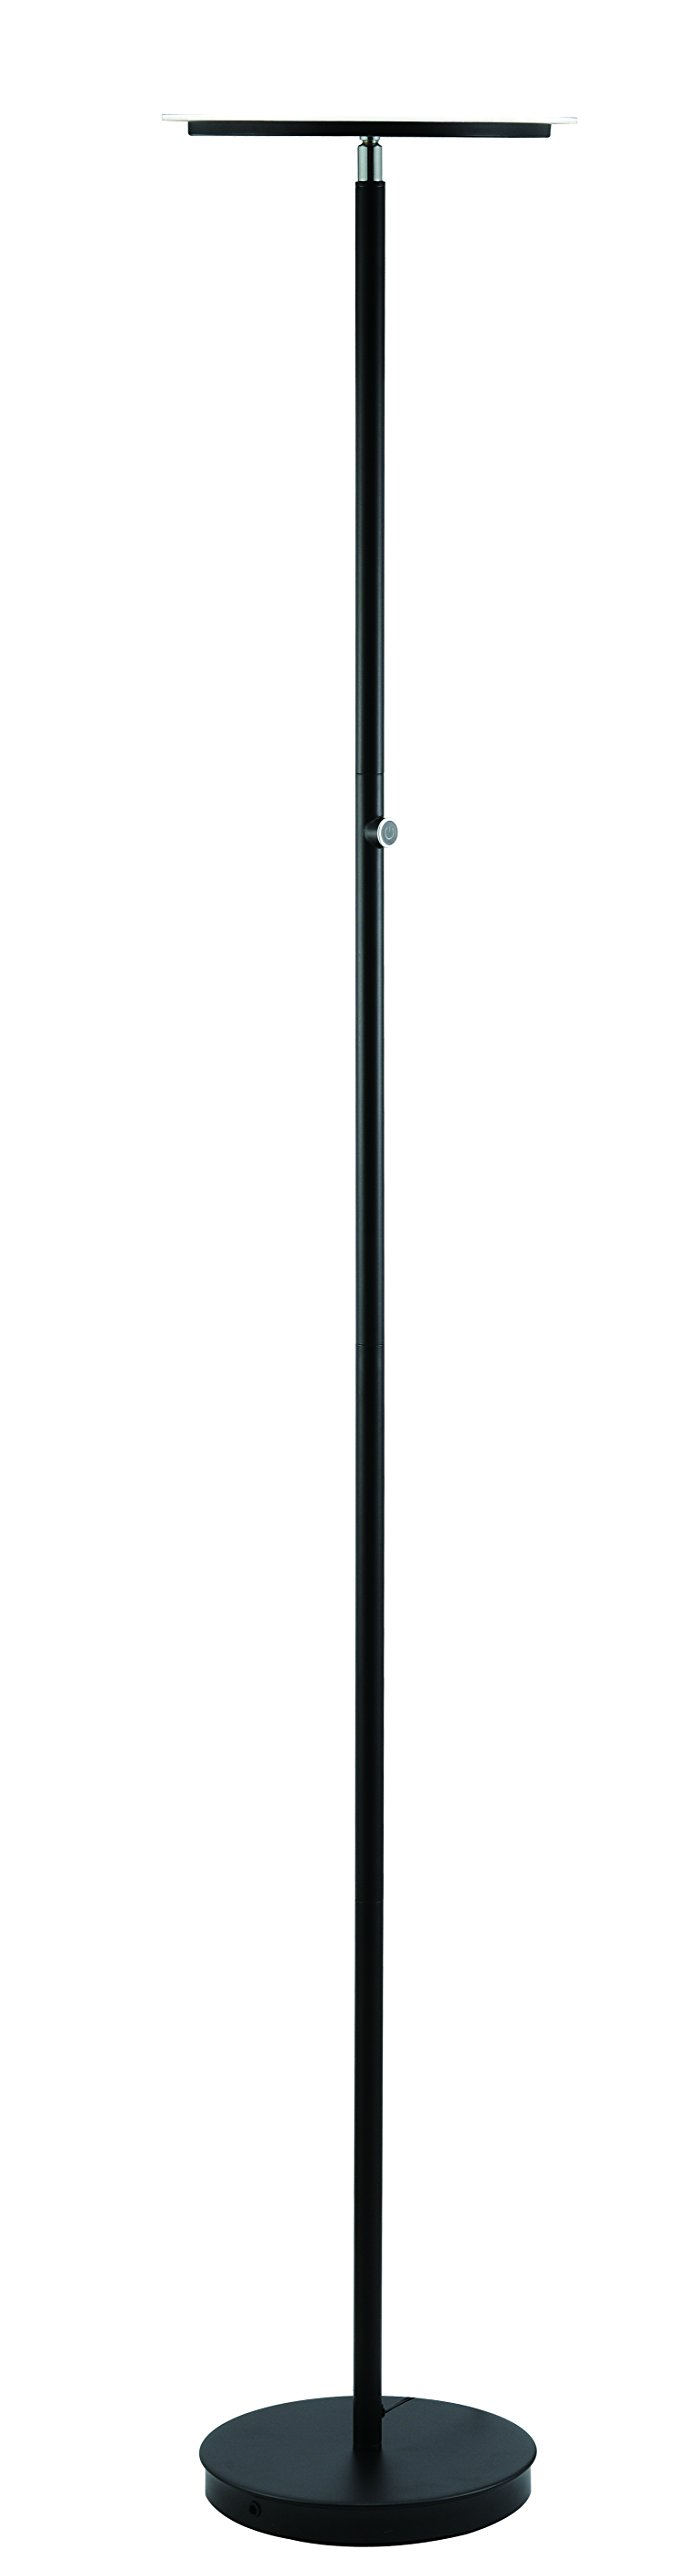 "Major-Q 3035F-BK LED Torchiere Floor Lamp Efficient Energy Saving 4-Level-Touch Dimmable Ultra Bright Lumens Light, 70"" Adjustable Head for Bedroom Living Room - EXCELLENT SOURCE OF LIGHT THAT OUTPERFORMS: High Lumens that exceeds 2400, performing better and smarter than other similar lamps, perfect for any room or space and is sturdy and stable due to its solid custom weighted base, making it safer than others for knock-free incidents. This beautiful floor lamp is made to give a statement of style and new modern ideas for making your home sharper in detail and brighter. CONTINUOUS EFFORTLESS CONTROL: Deciding the level of brightness is effortless, adjusting the lamp is just a simple touch that adjusts as you desire, you will be pleased on how well and simple the switch is to use. Sensitive enough for you to gracefully operate. PIVOT HEAD SHADE DESIGN: Flexible rotating head shade allows the movement of how you want the light to be projected. Tilt it for when you need with smooth motion adjustments. Never be stuck to only one adjustment anymore! - living-room-decor, living-room, floor-lamps - 51XMxzsxfeL -"